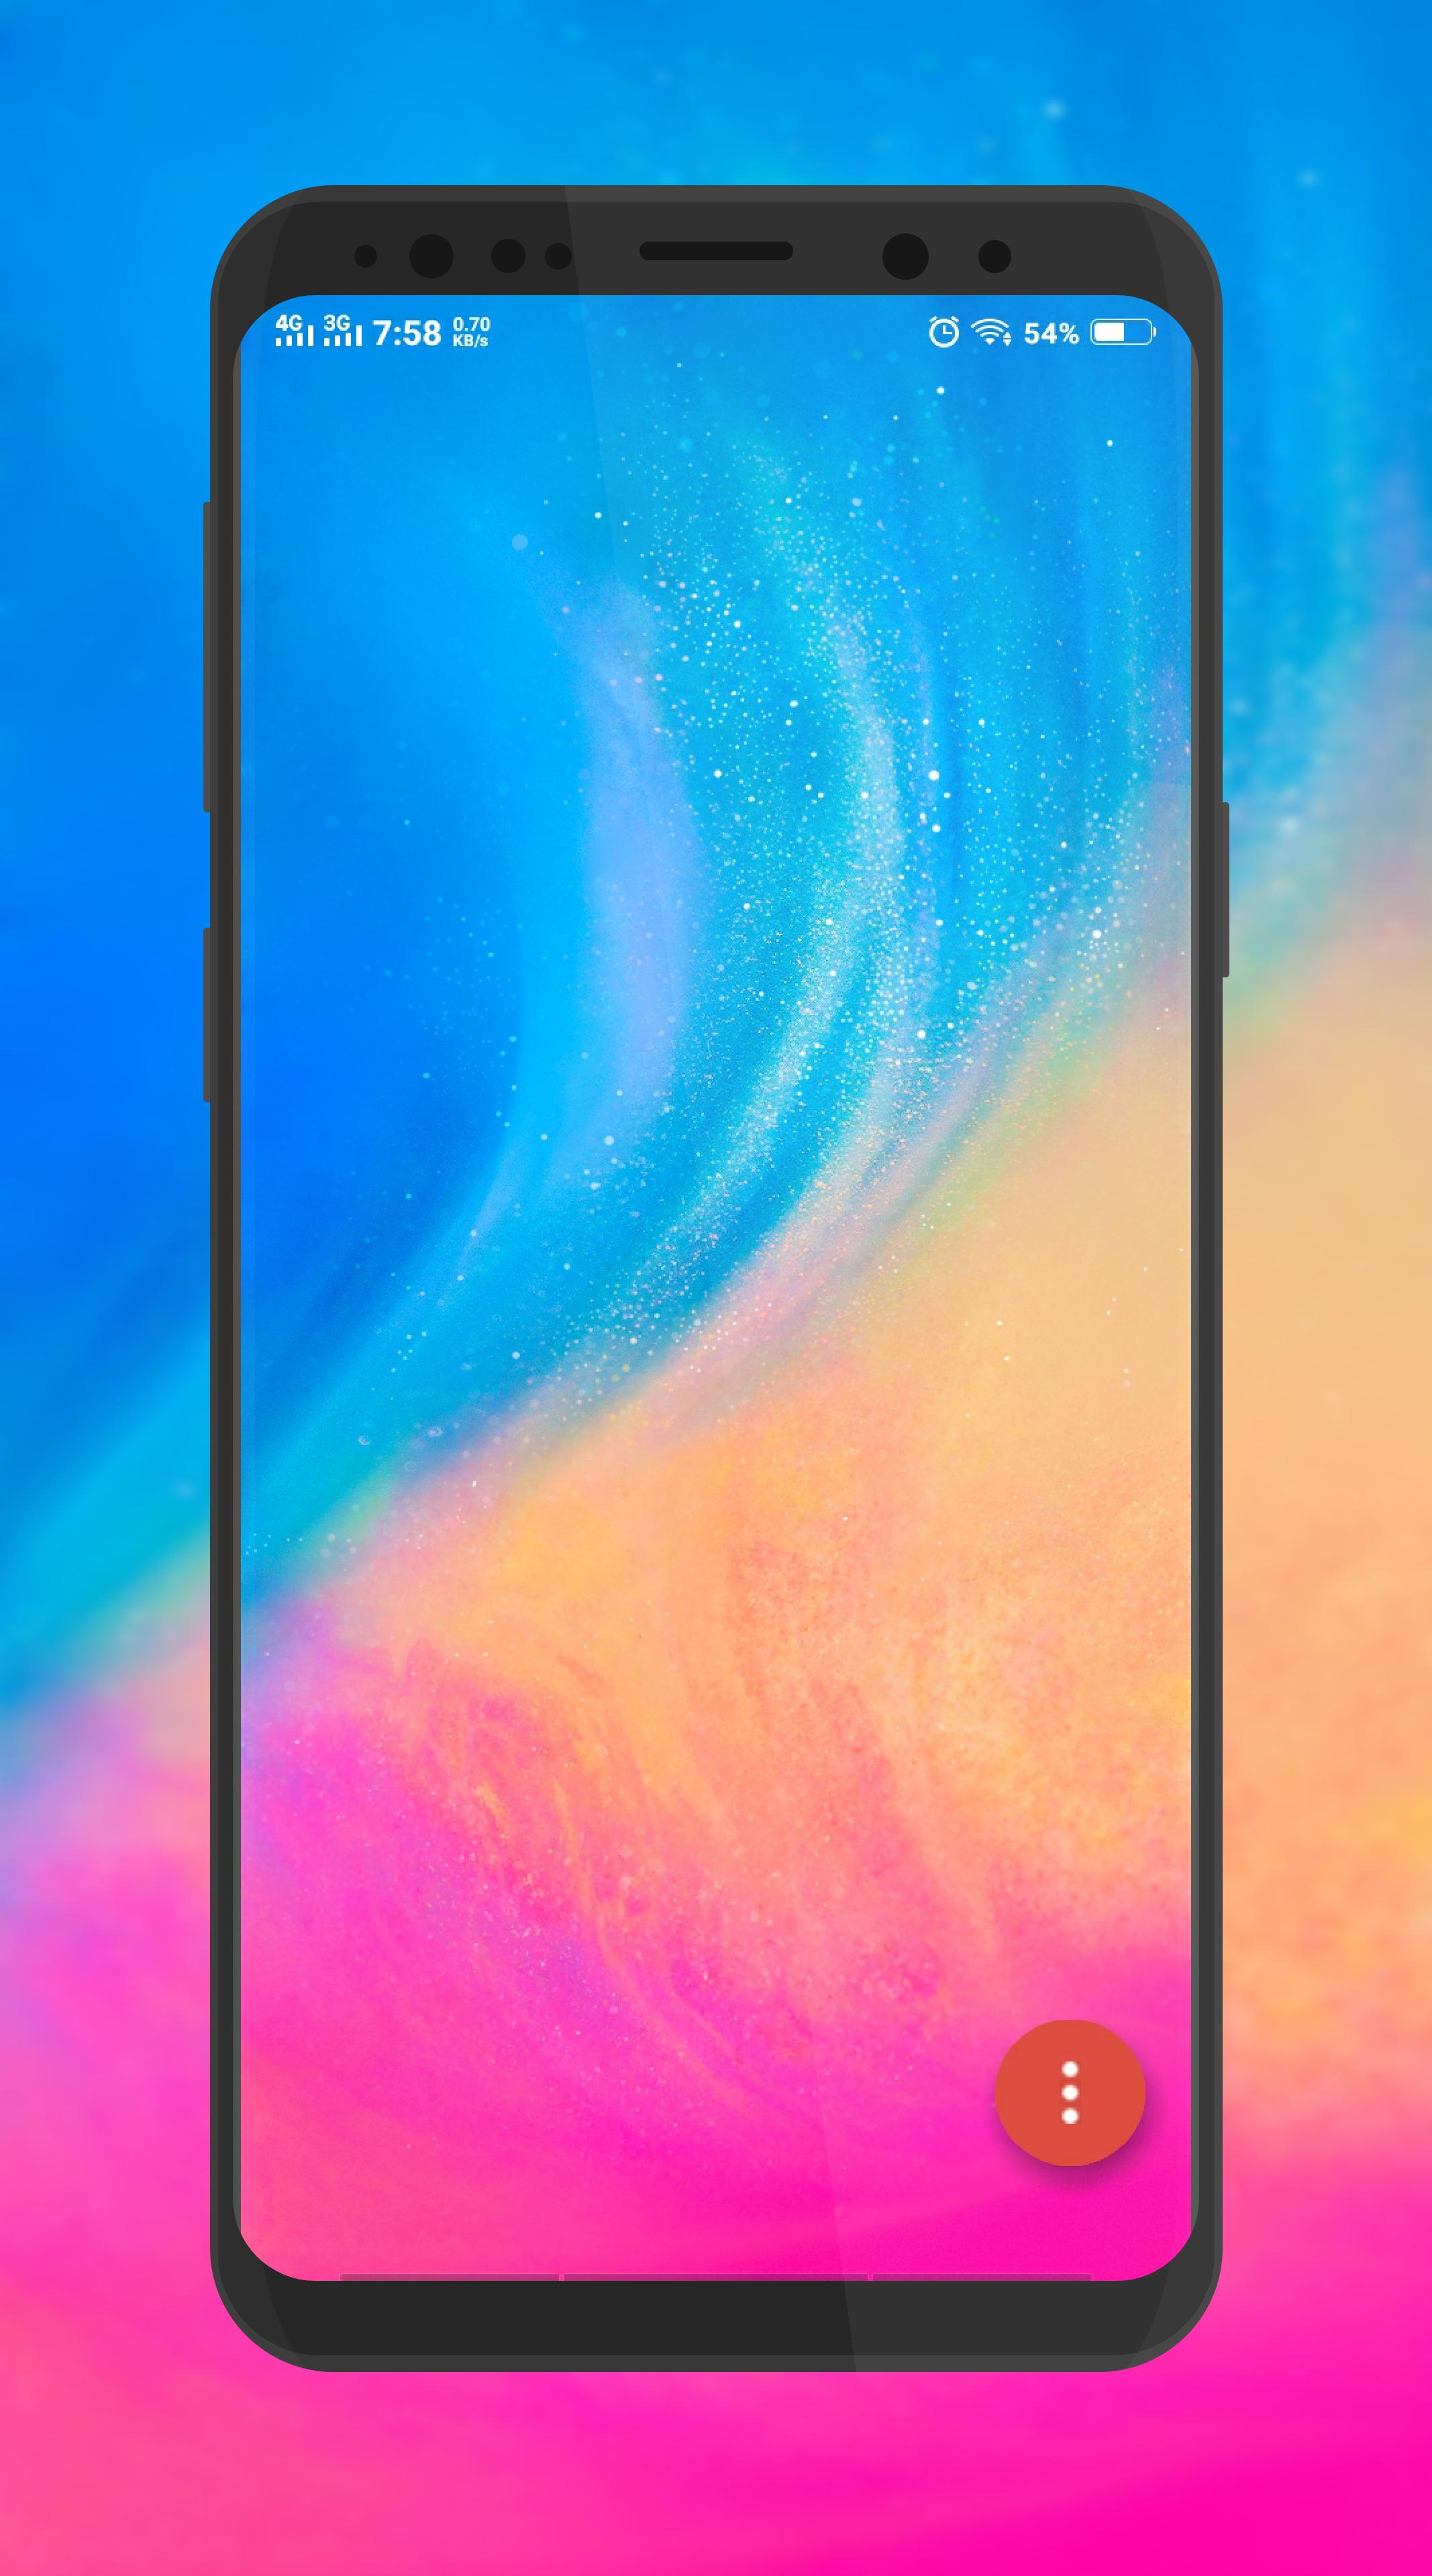 Vivo Nex S Wallpapers And Backgrounds Hd For Android Apk Download